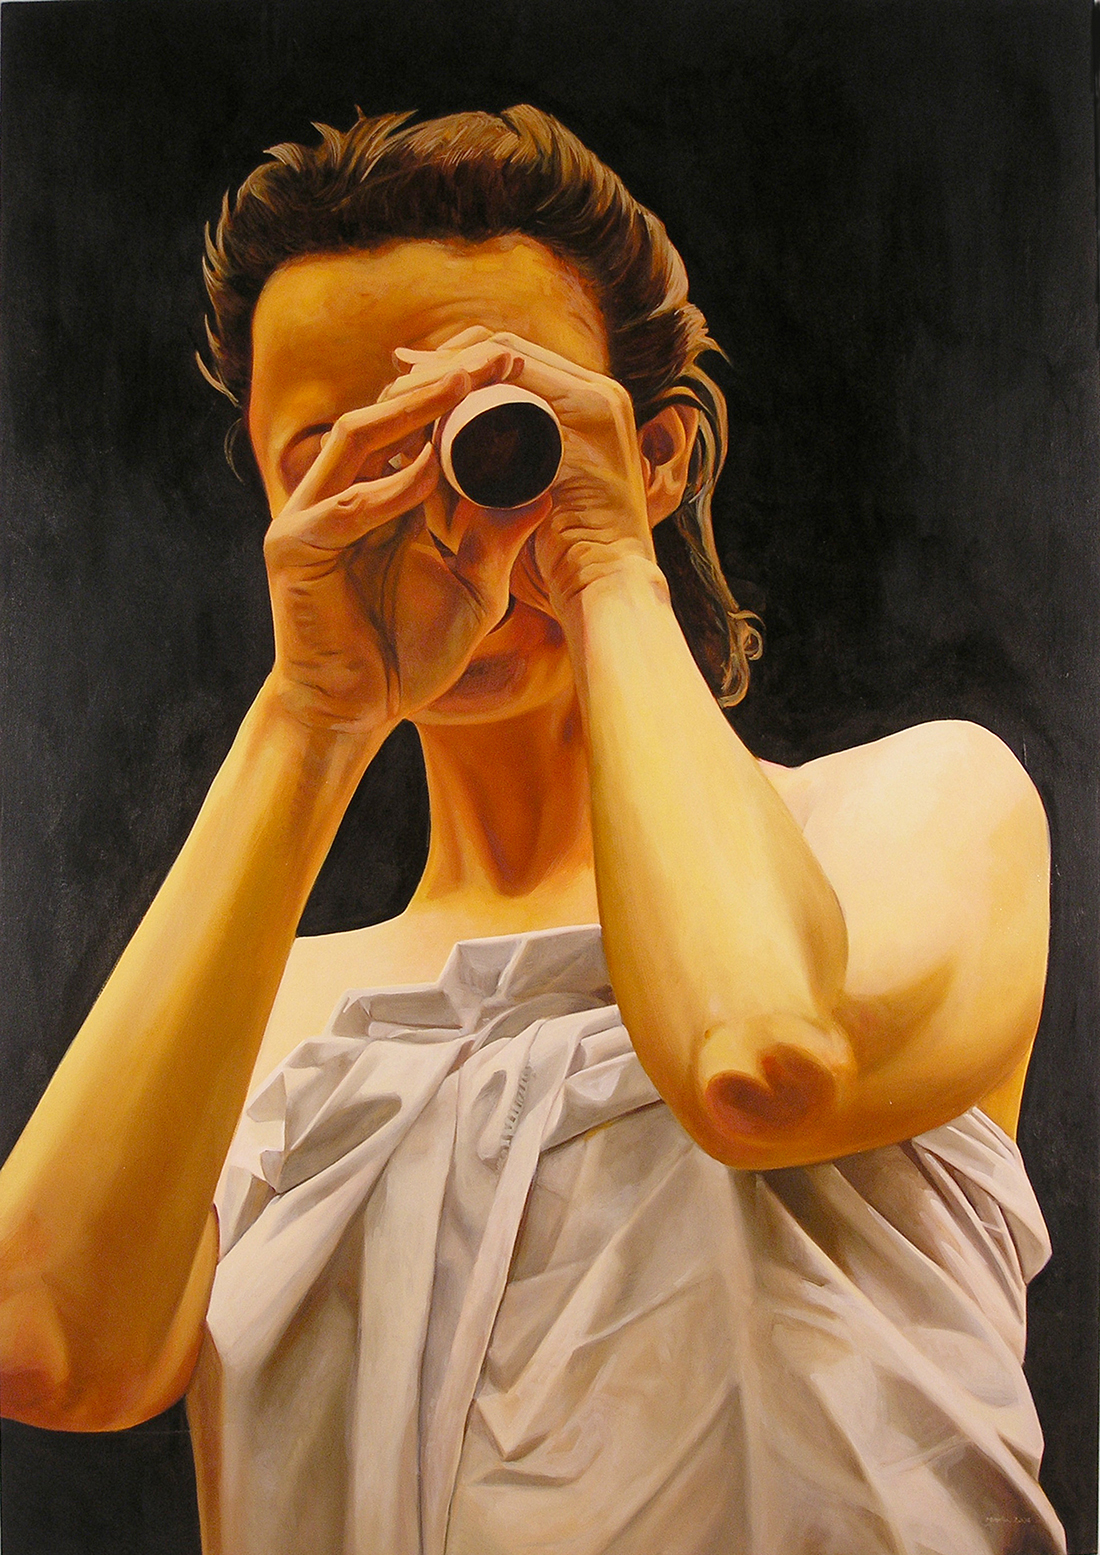 Oil painting of woman looking out at viewer through a tube (a spyglass).